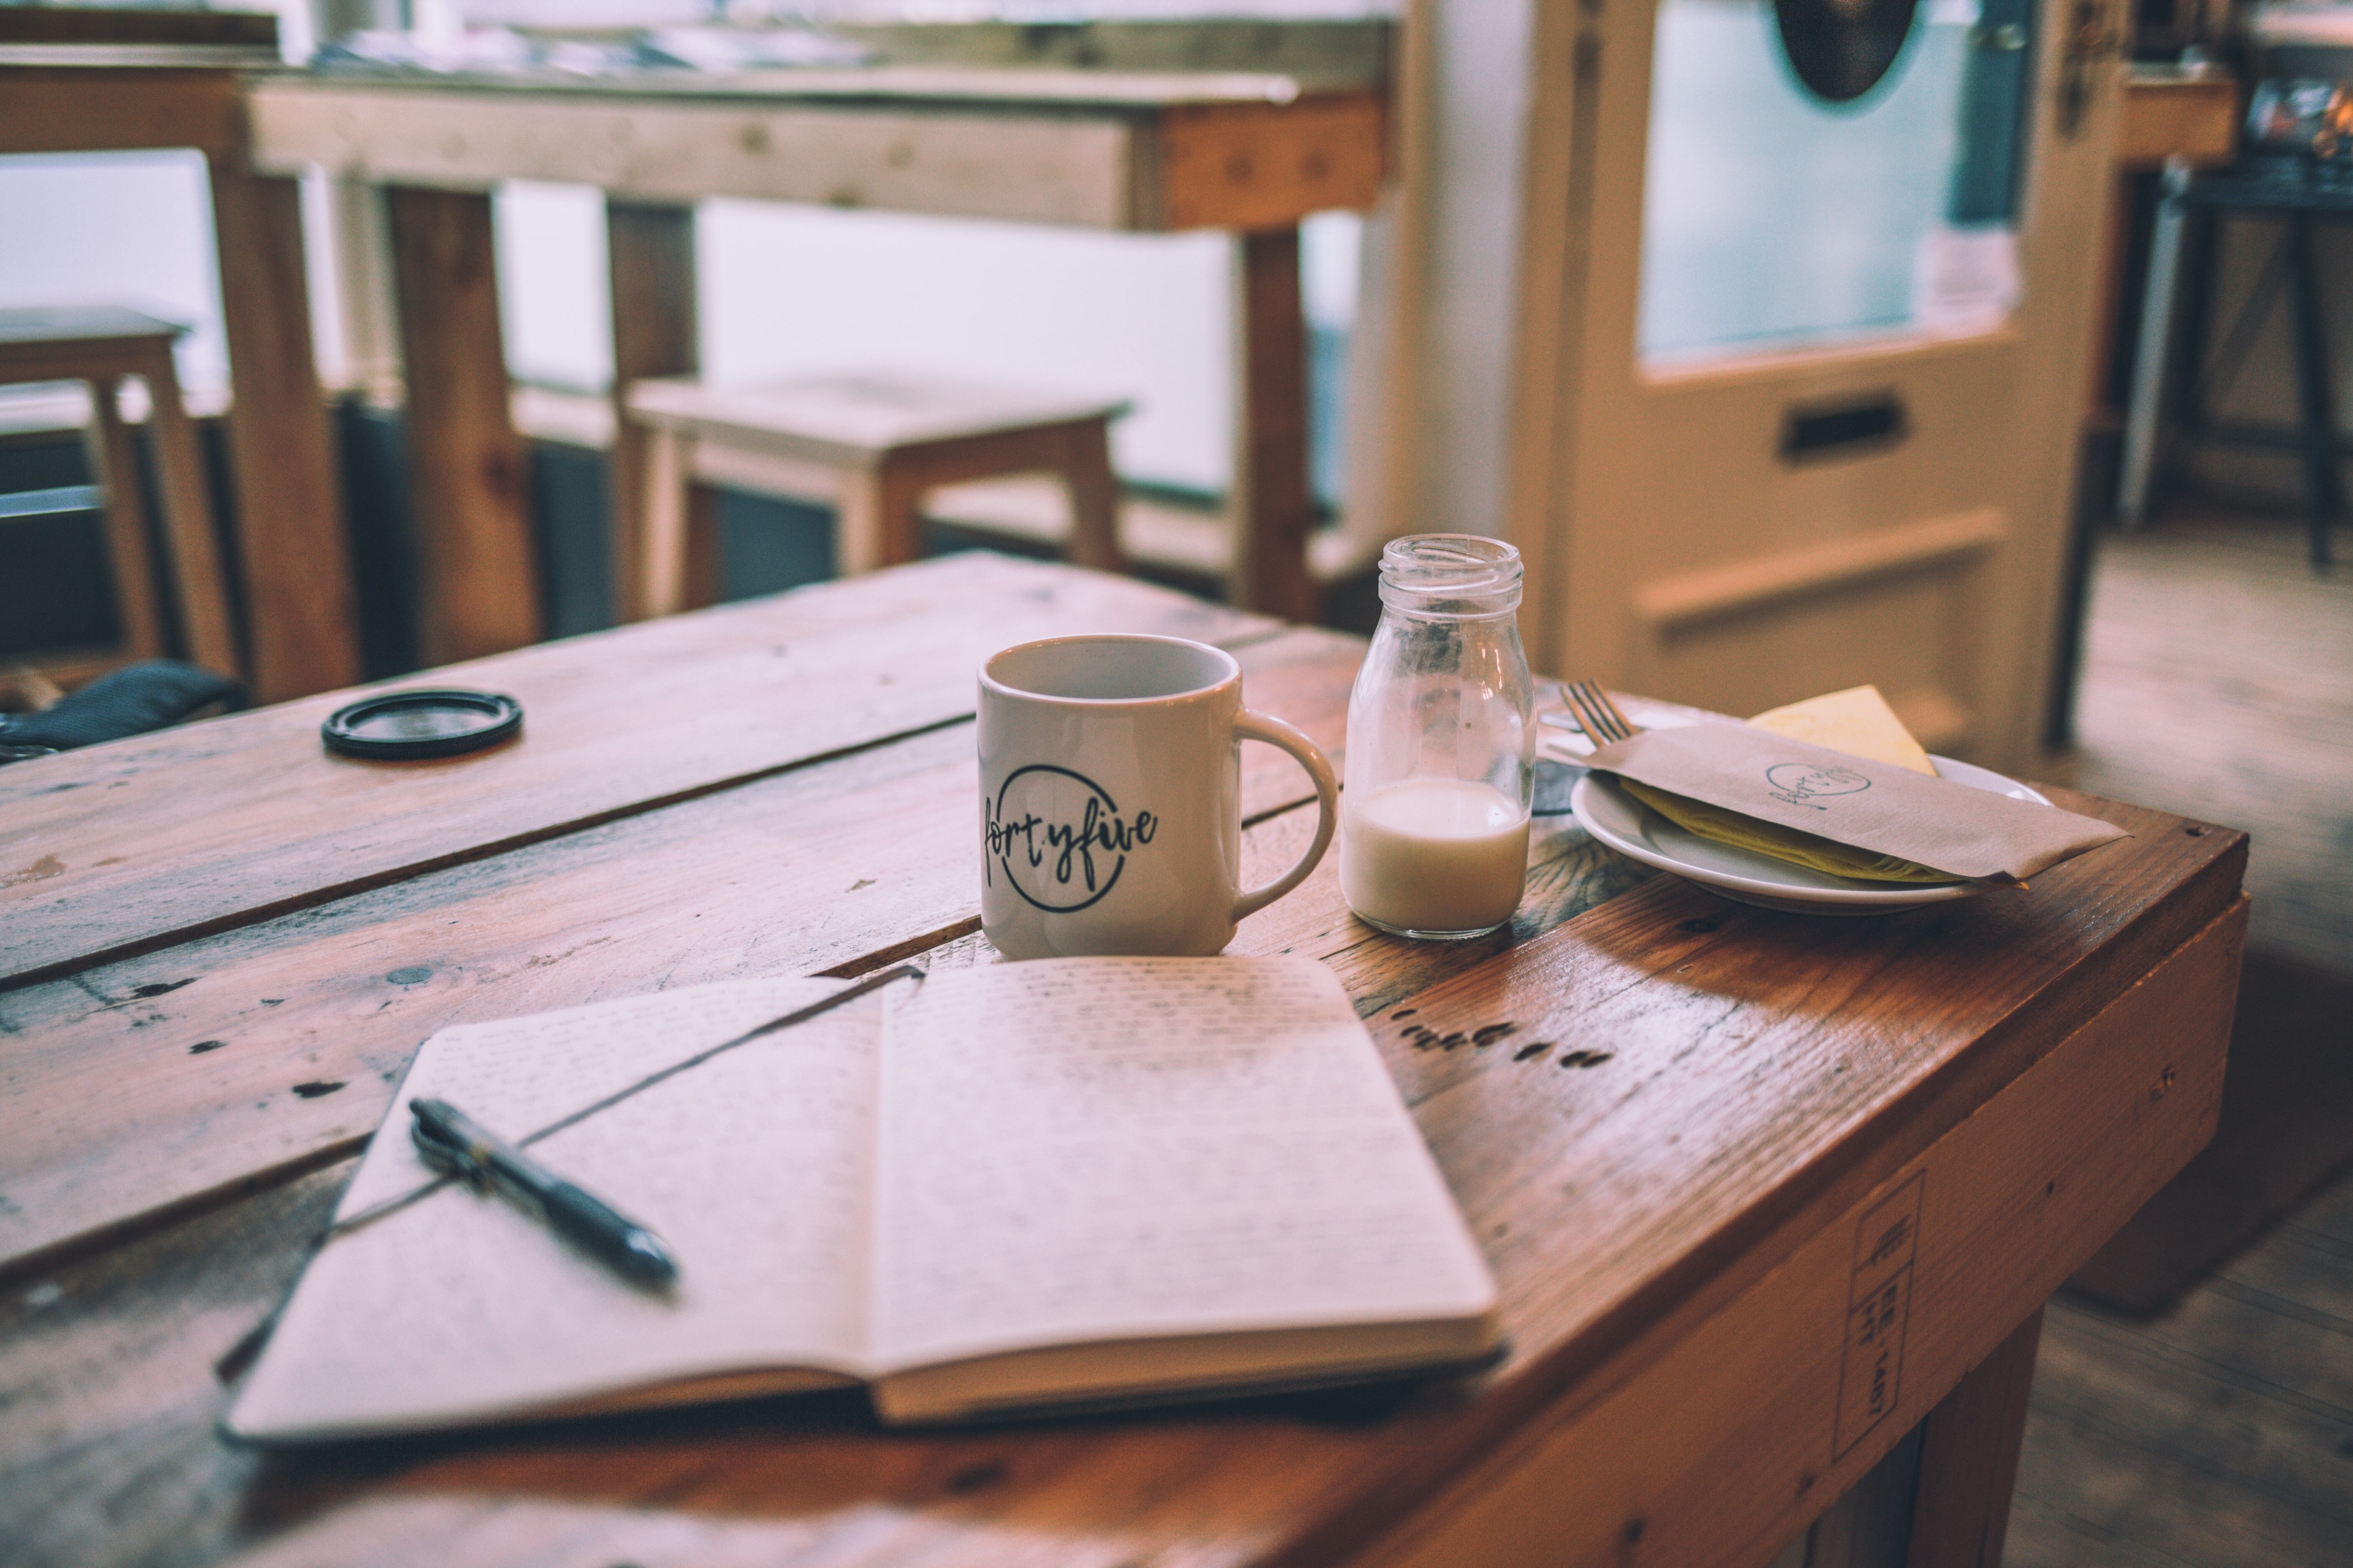 Wooden table featuring an open notebook, a mug and a bottle of milk.